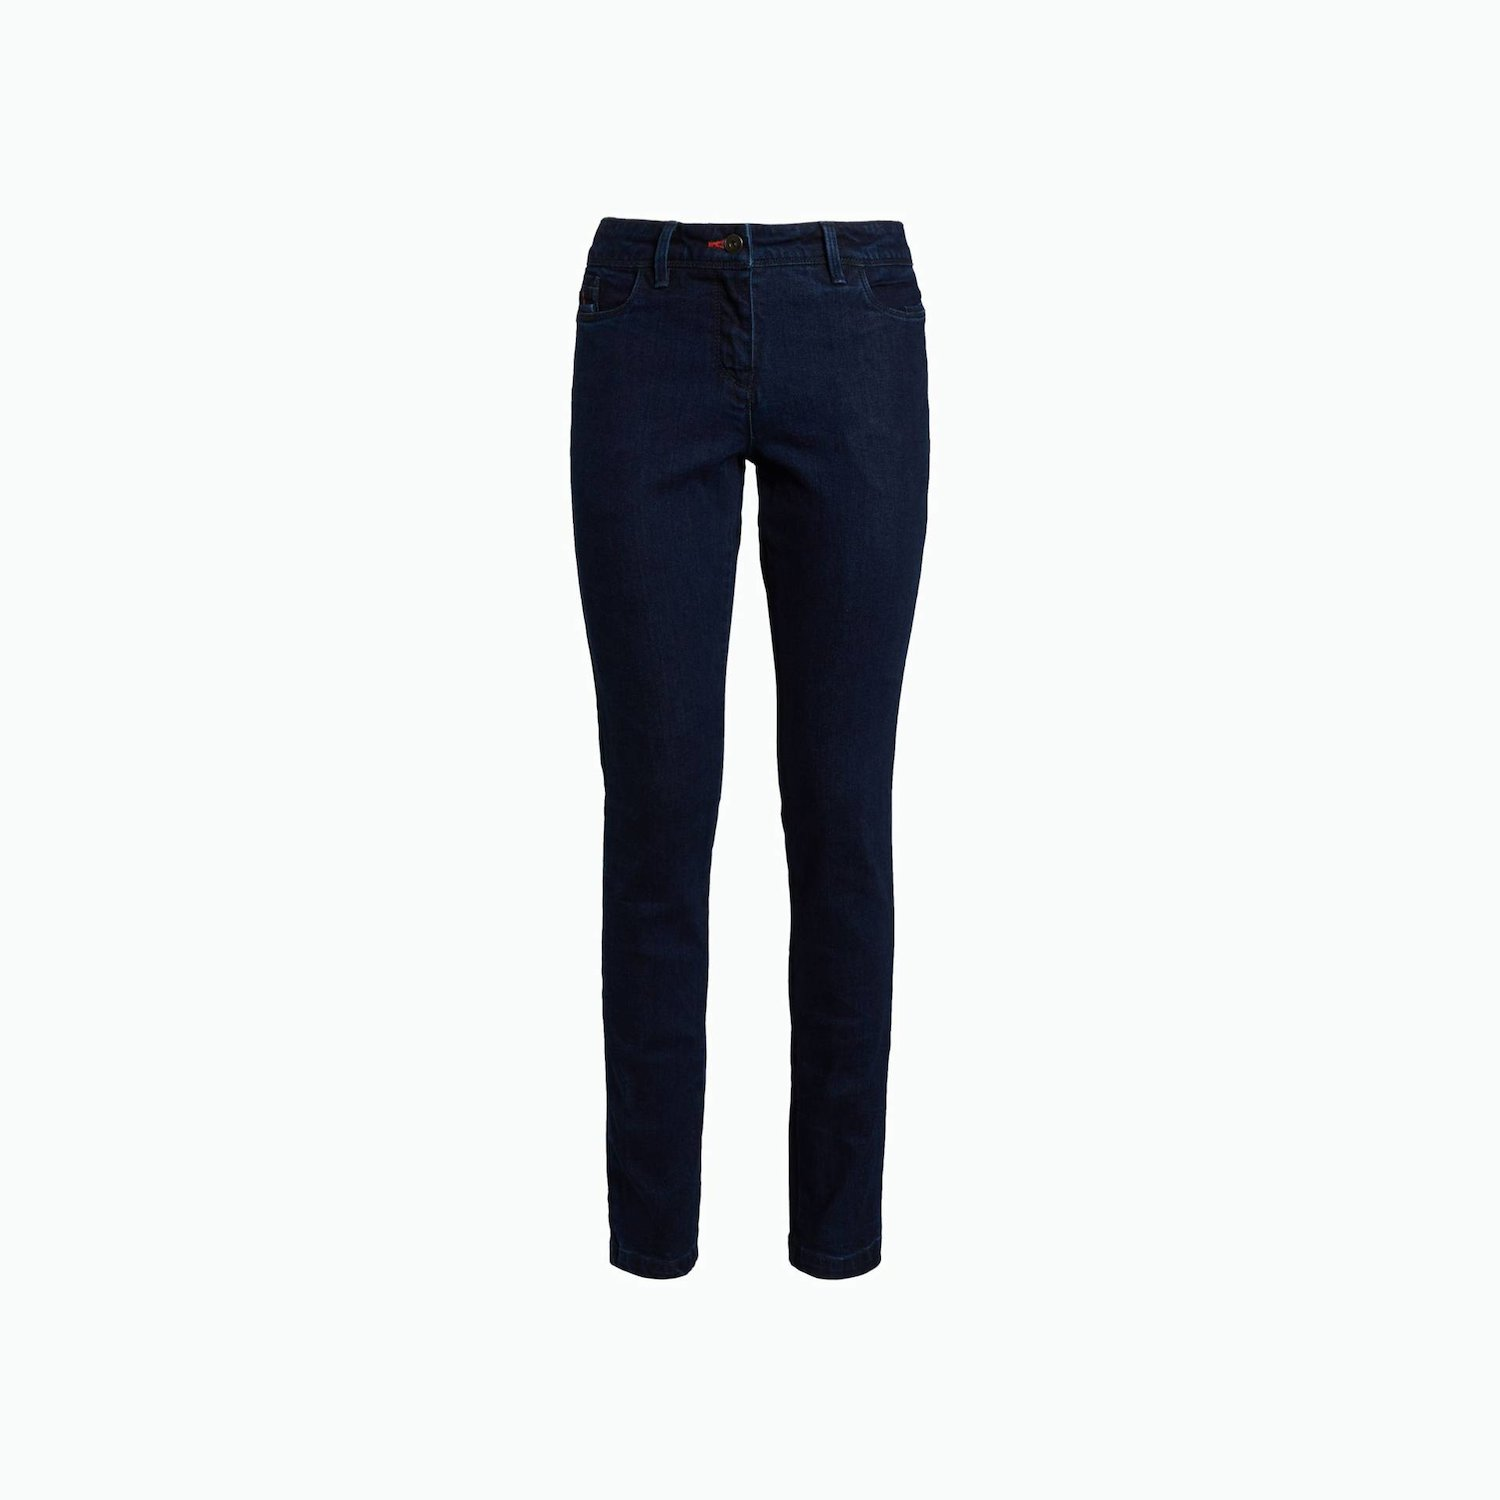 Hose B200 - Dark denim